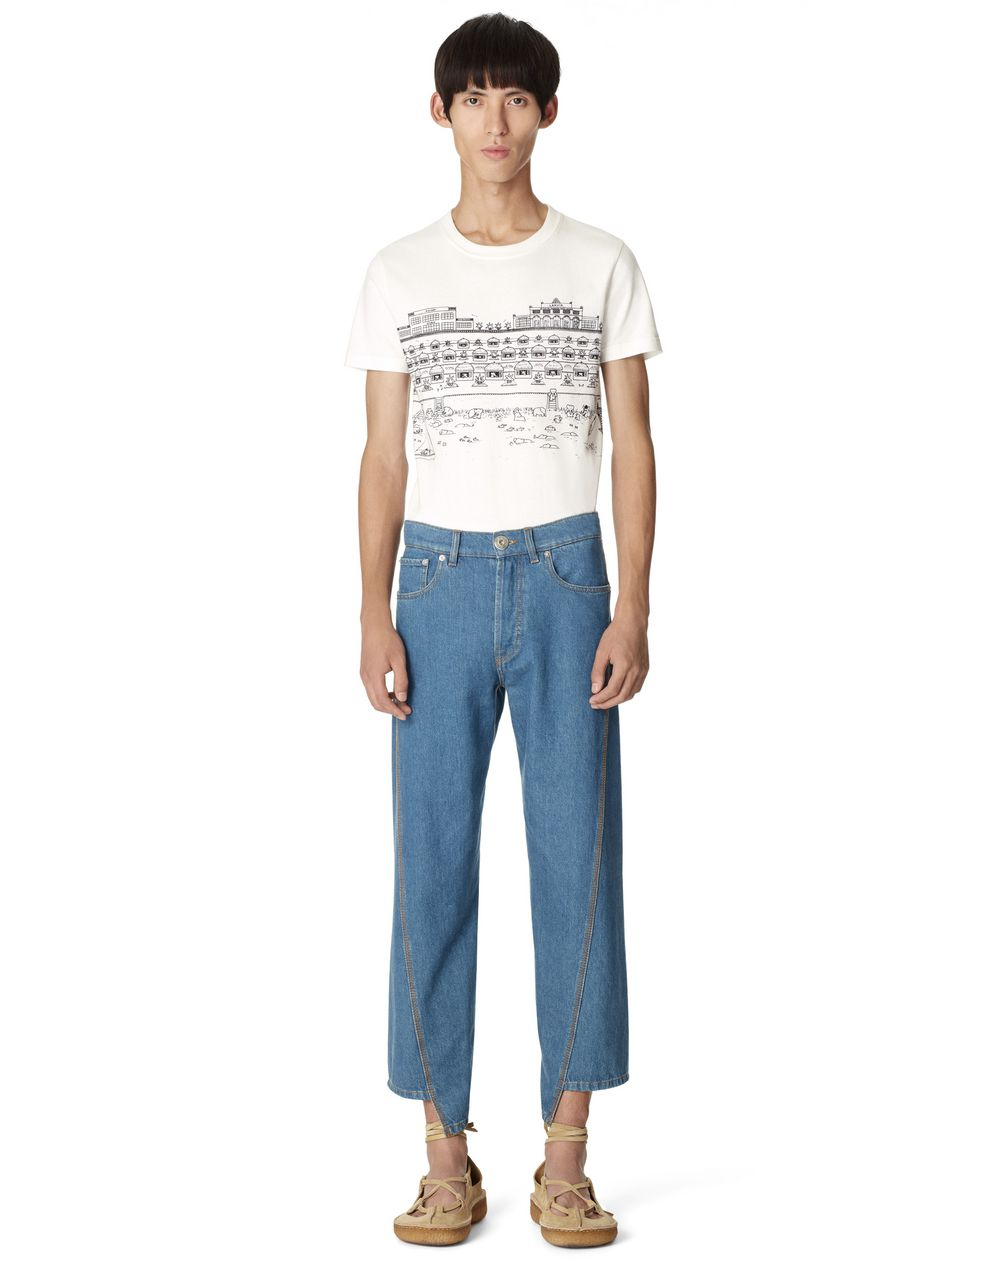 PANTALONI IN DENIM - Lanvin